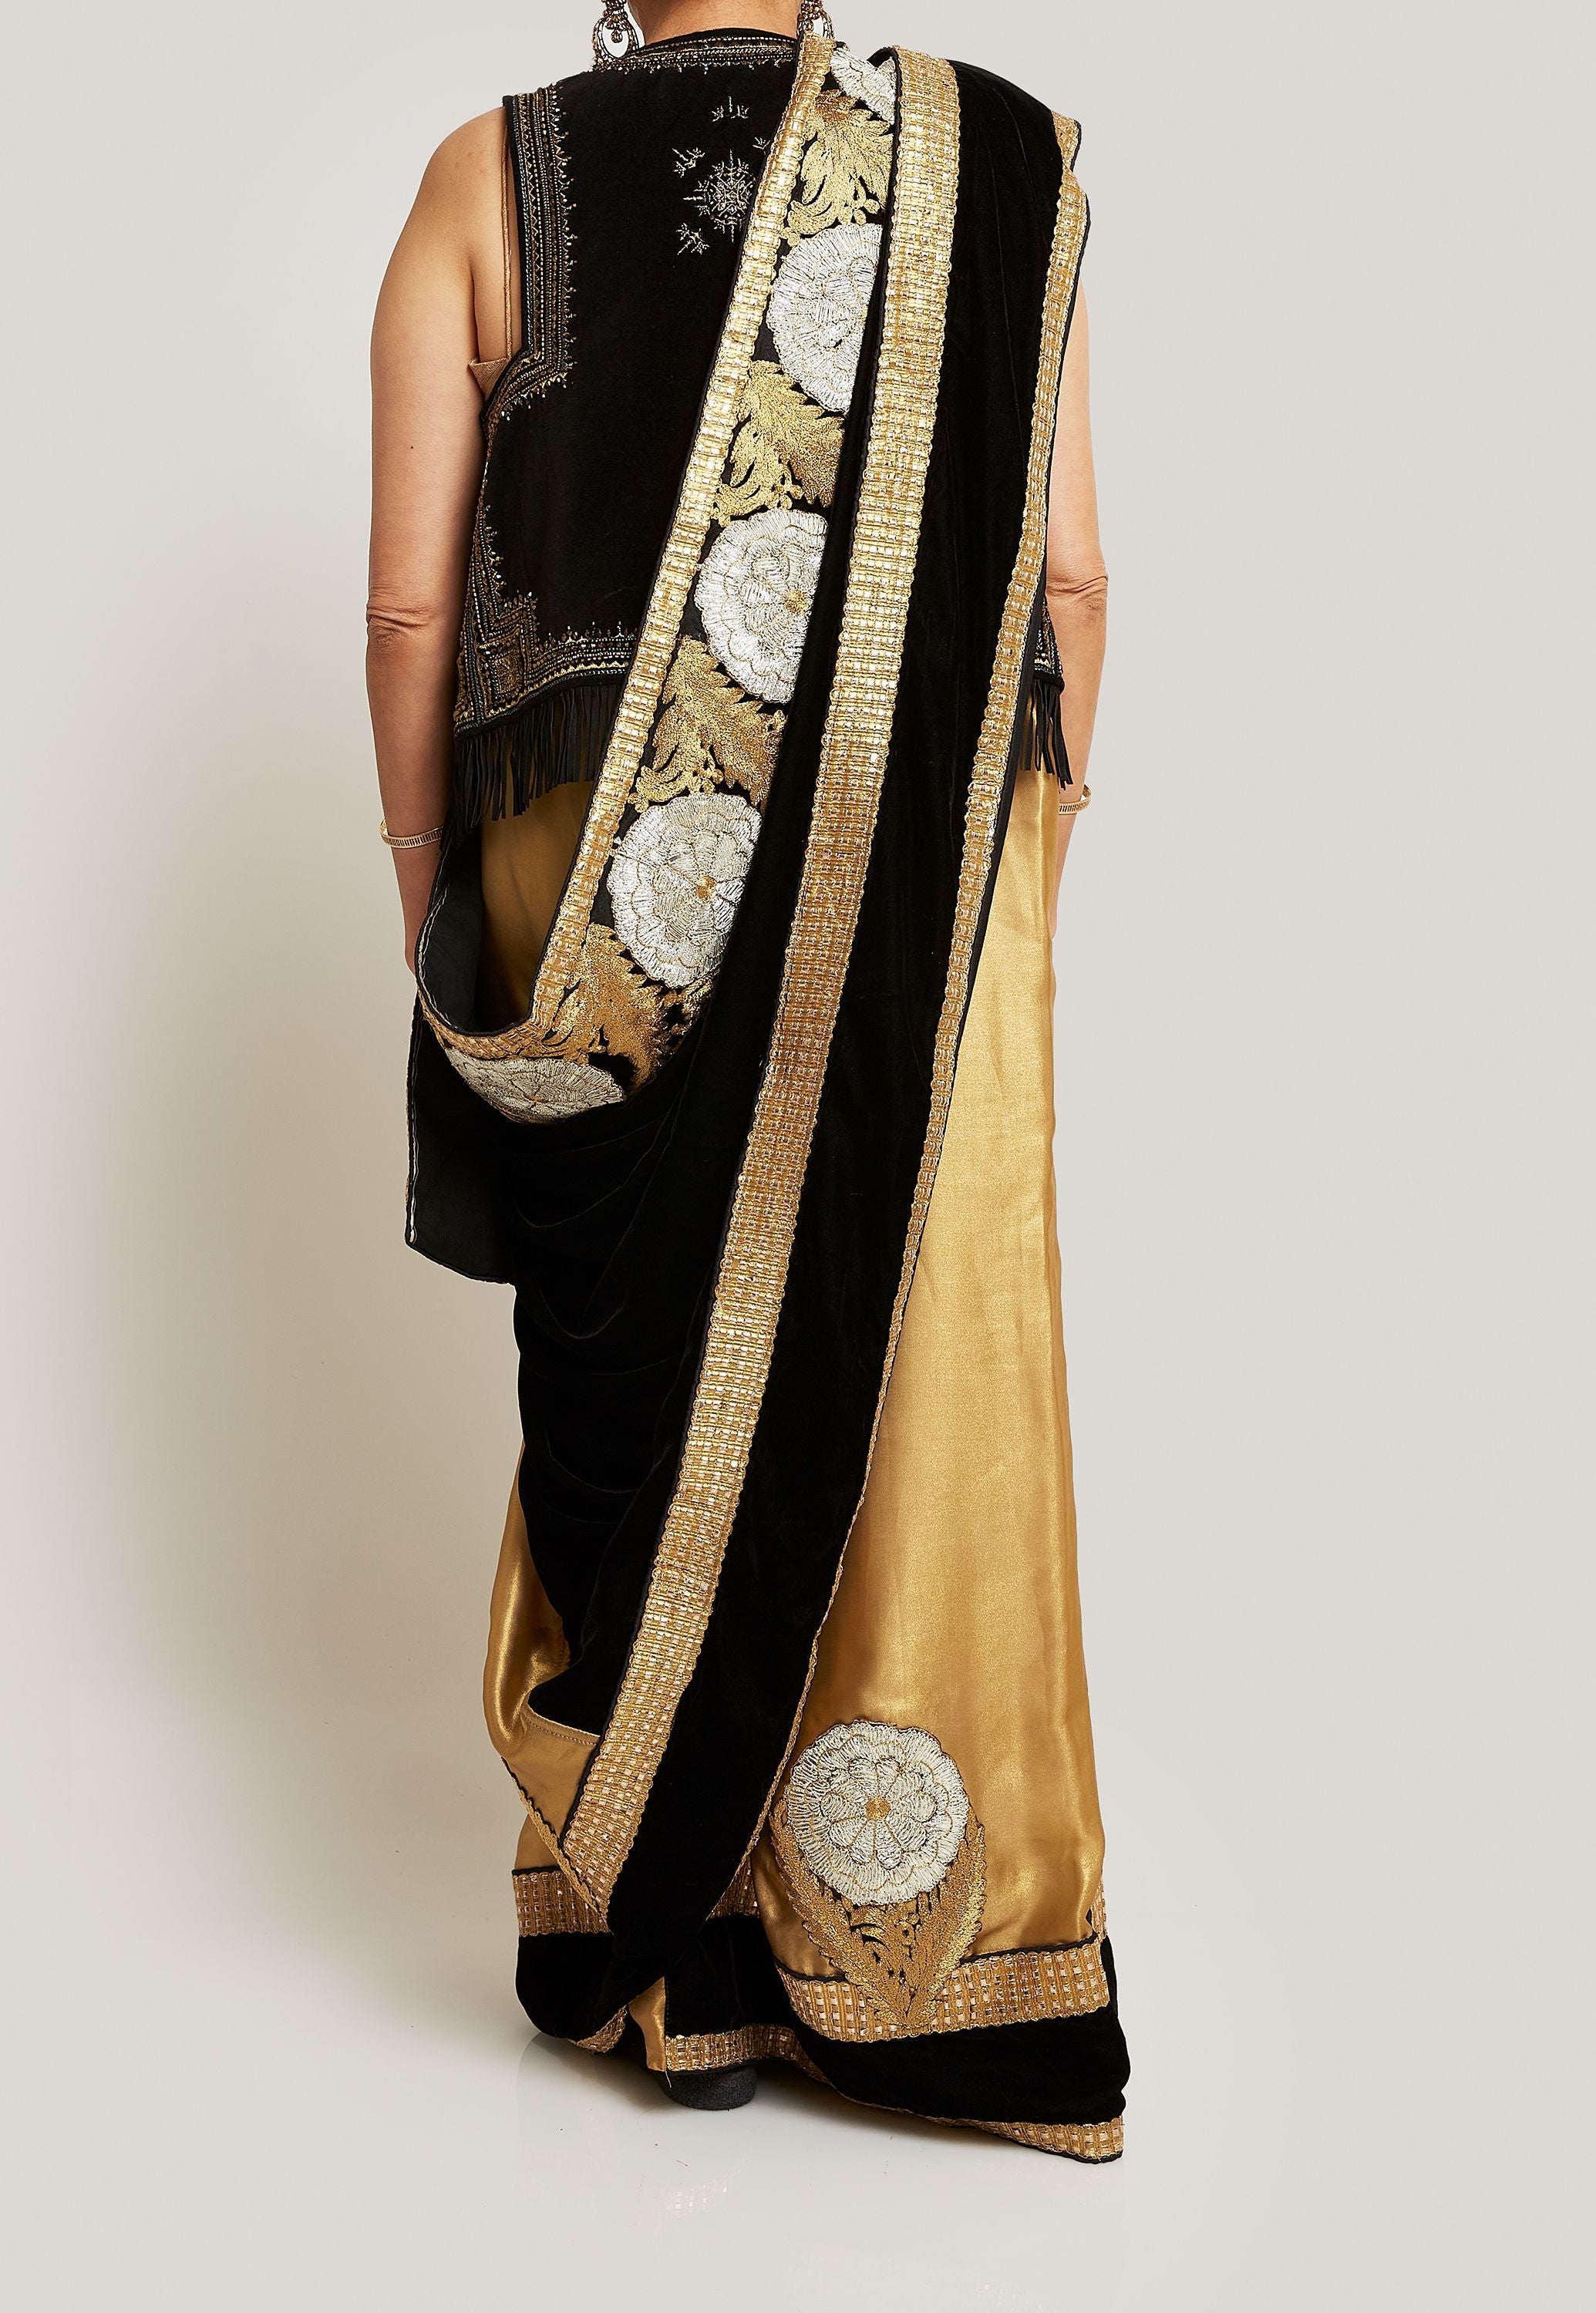 BLACK AND GOLD SILK AND VELVET SAREE WITH PAIRED WITH A GOLD BLOUSE AND A BLACK VELVET AND GOLD EMBELLISHED SLEEVELESS JACKET